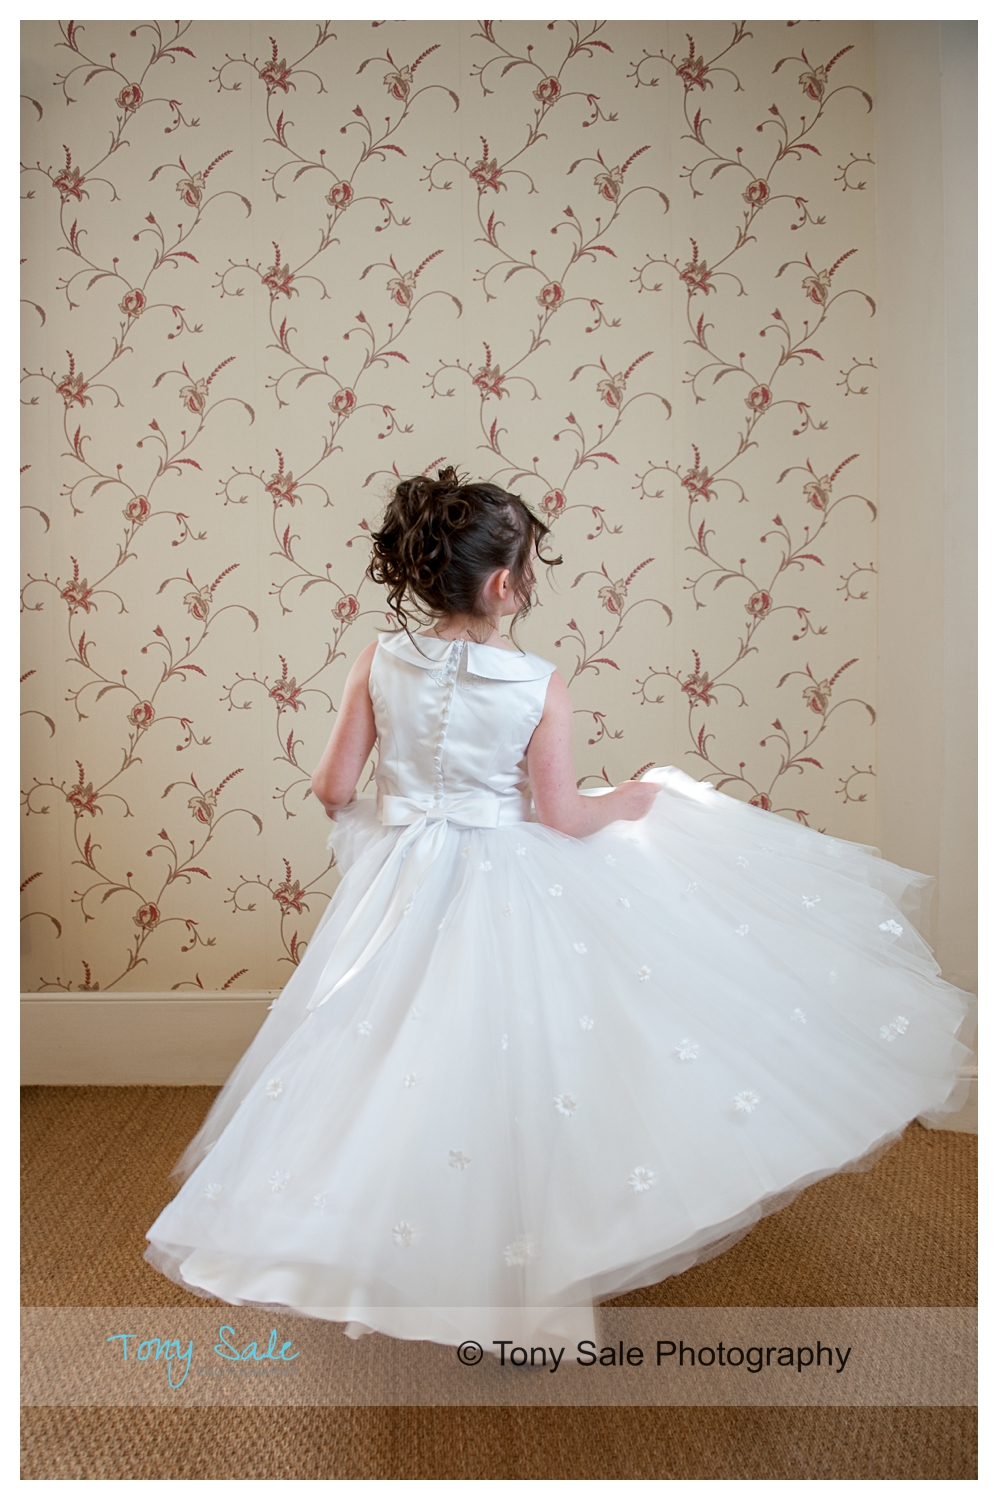 First Communion Dresses Essex_Tony Sale Photography_10